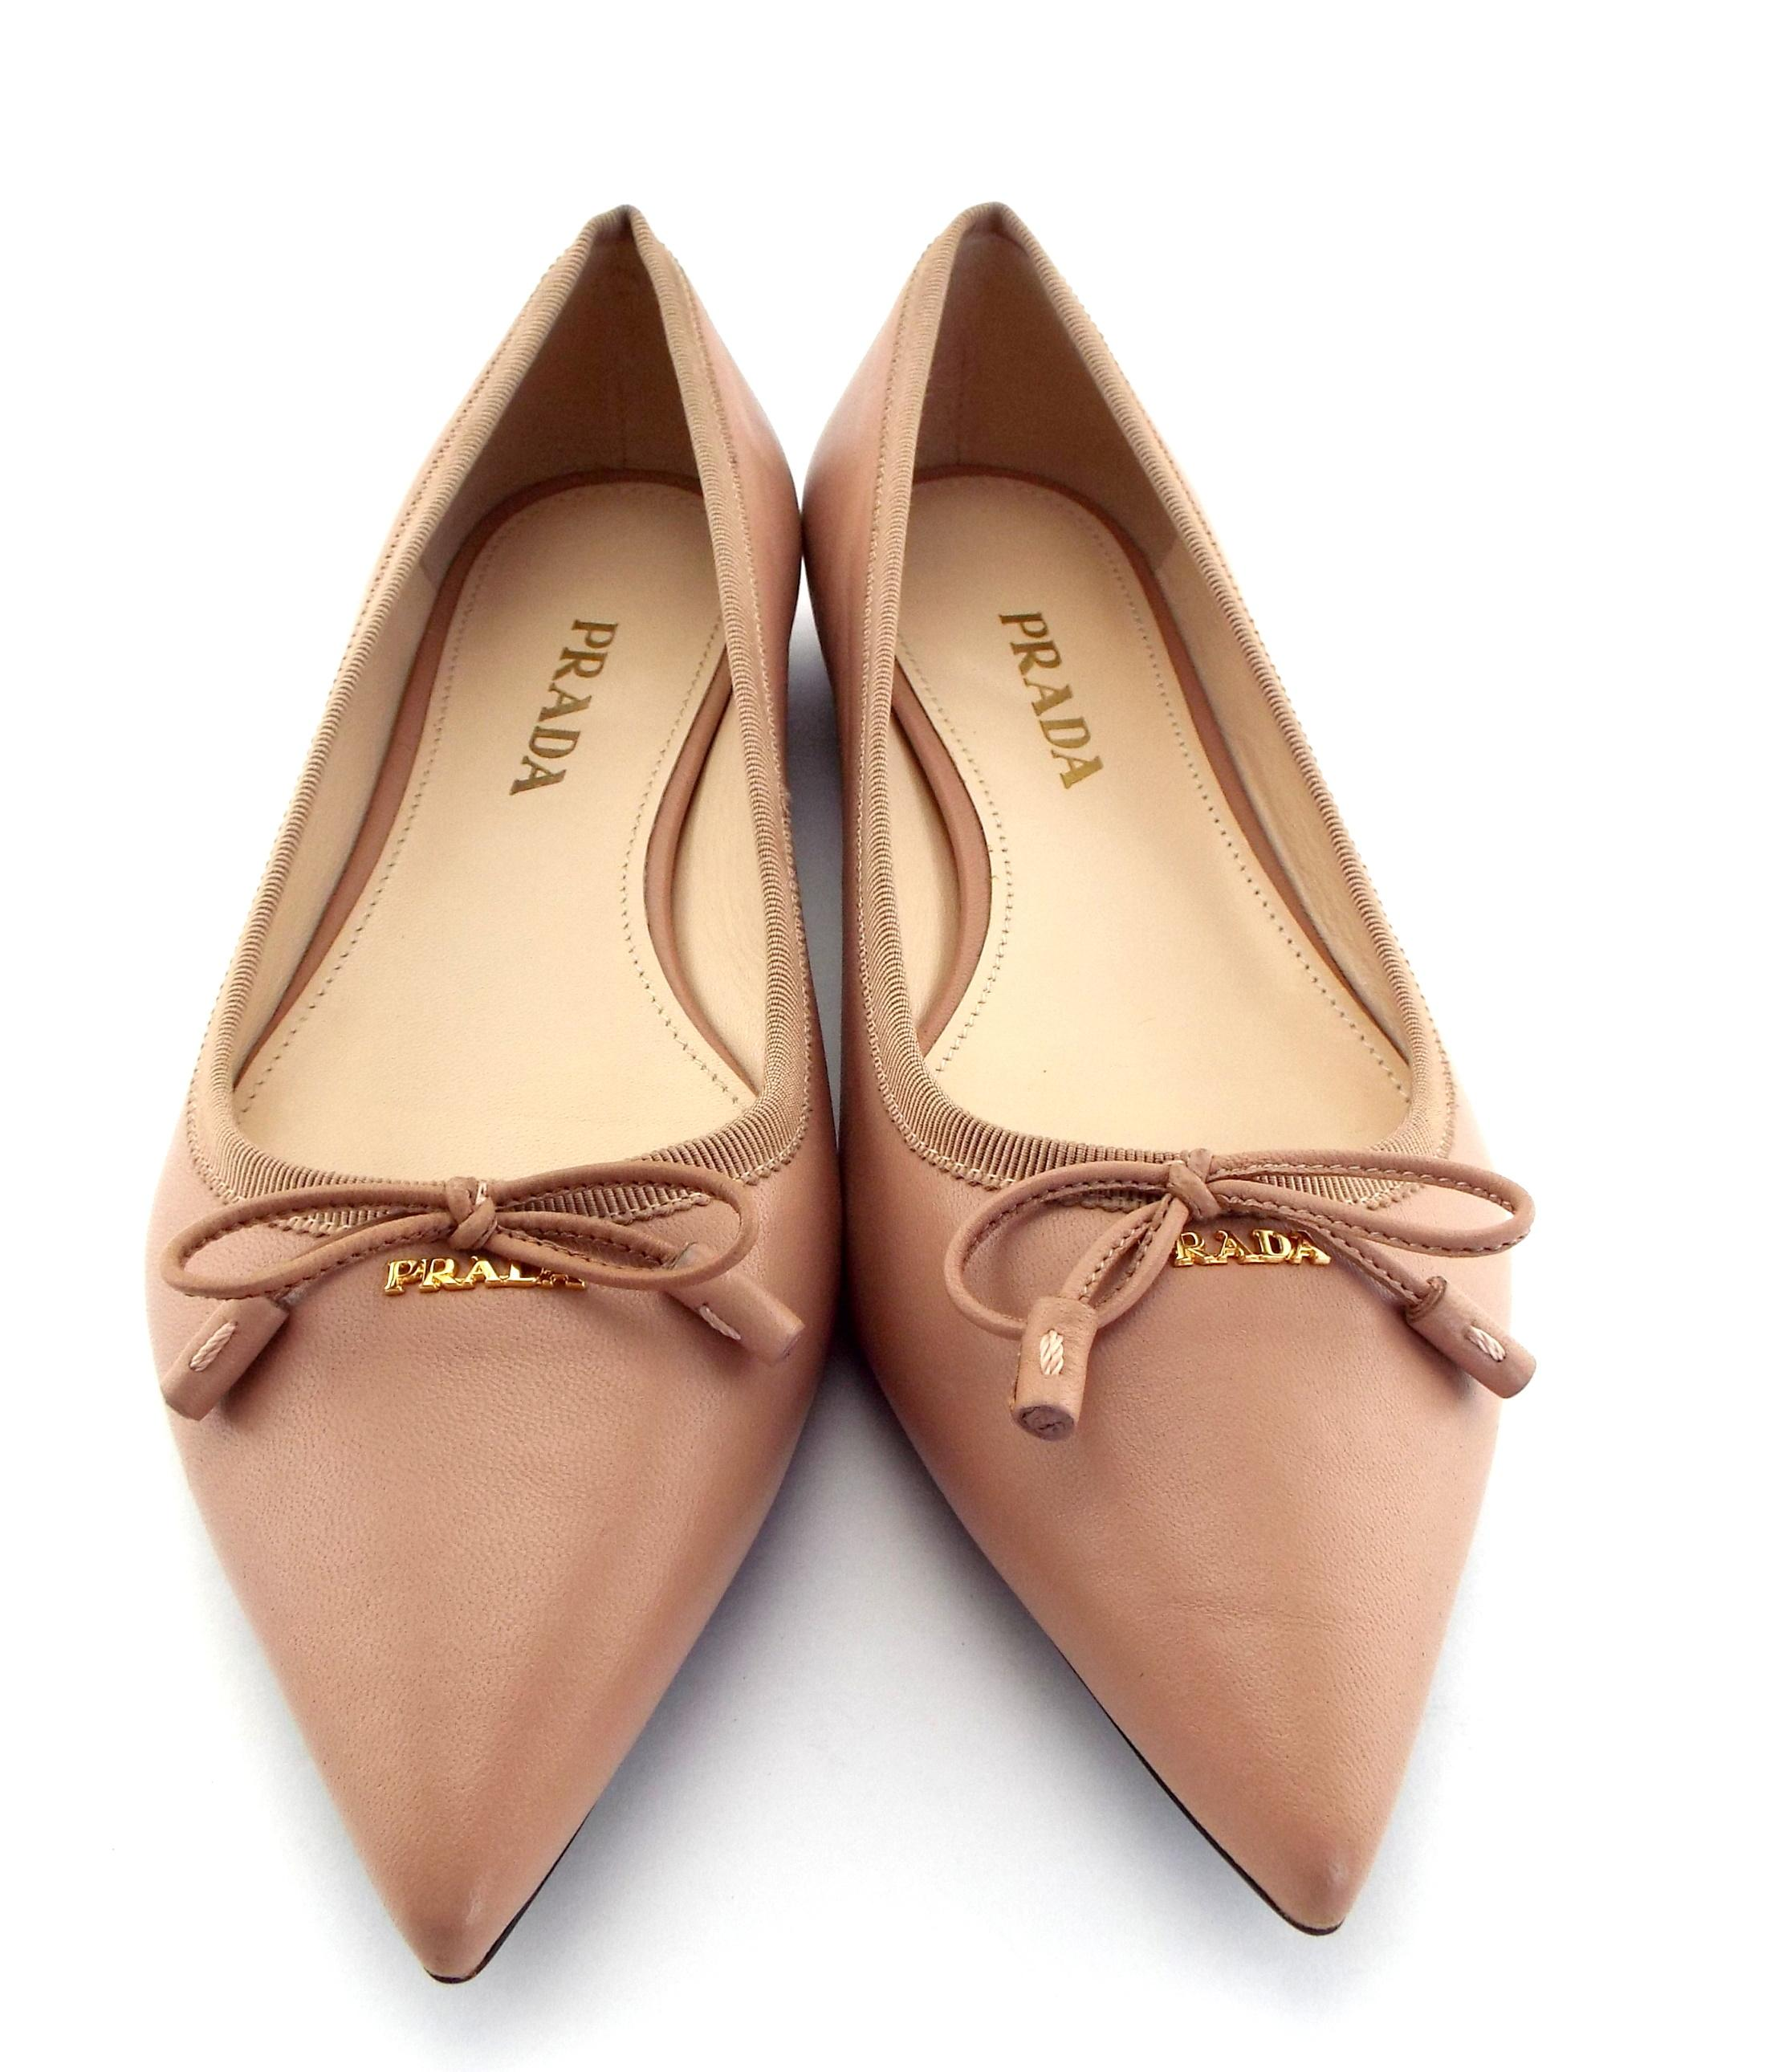 bd055ca98df prada-nude-leather-logo-tassel-bow-ballet-flats-size-eu-38-approx -us-8-regular-m-b-24079103-0-0.jpg